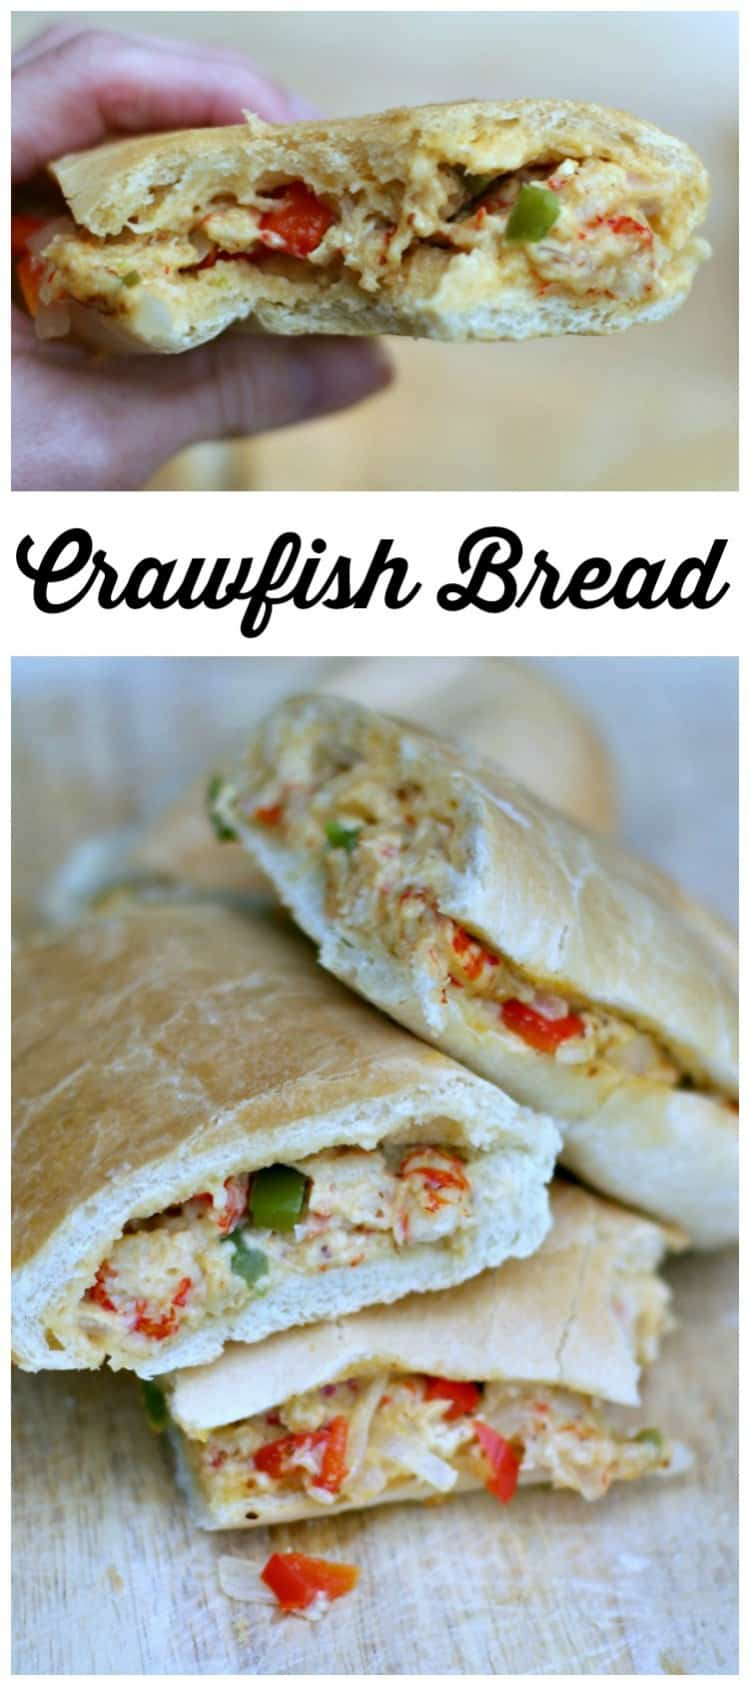 This New Orleans Jazz Fest Crawfish Bread Recipe is easy to make and filled with authentic flavors in every bite!